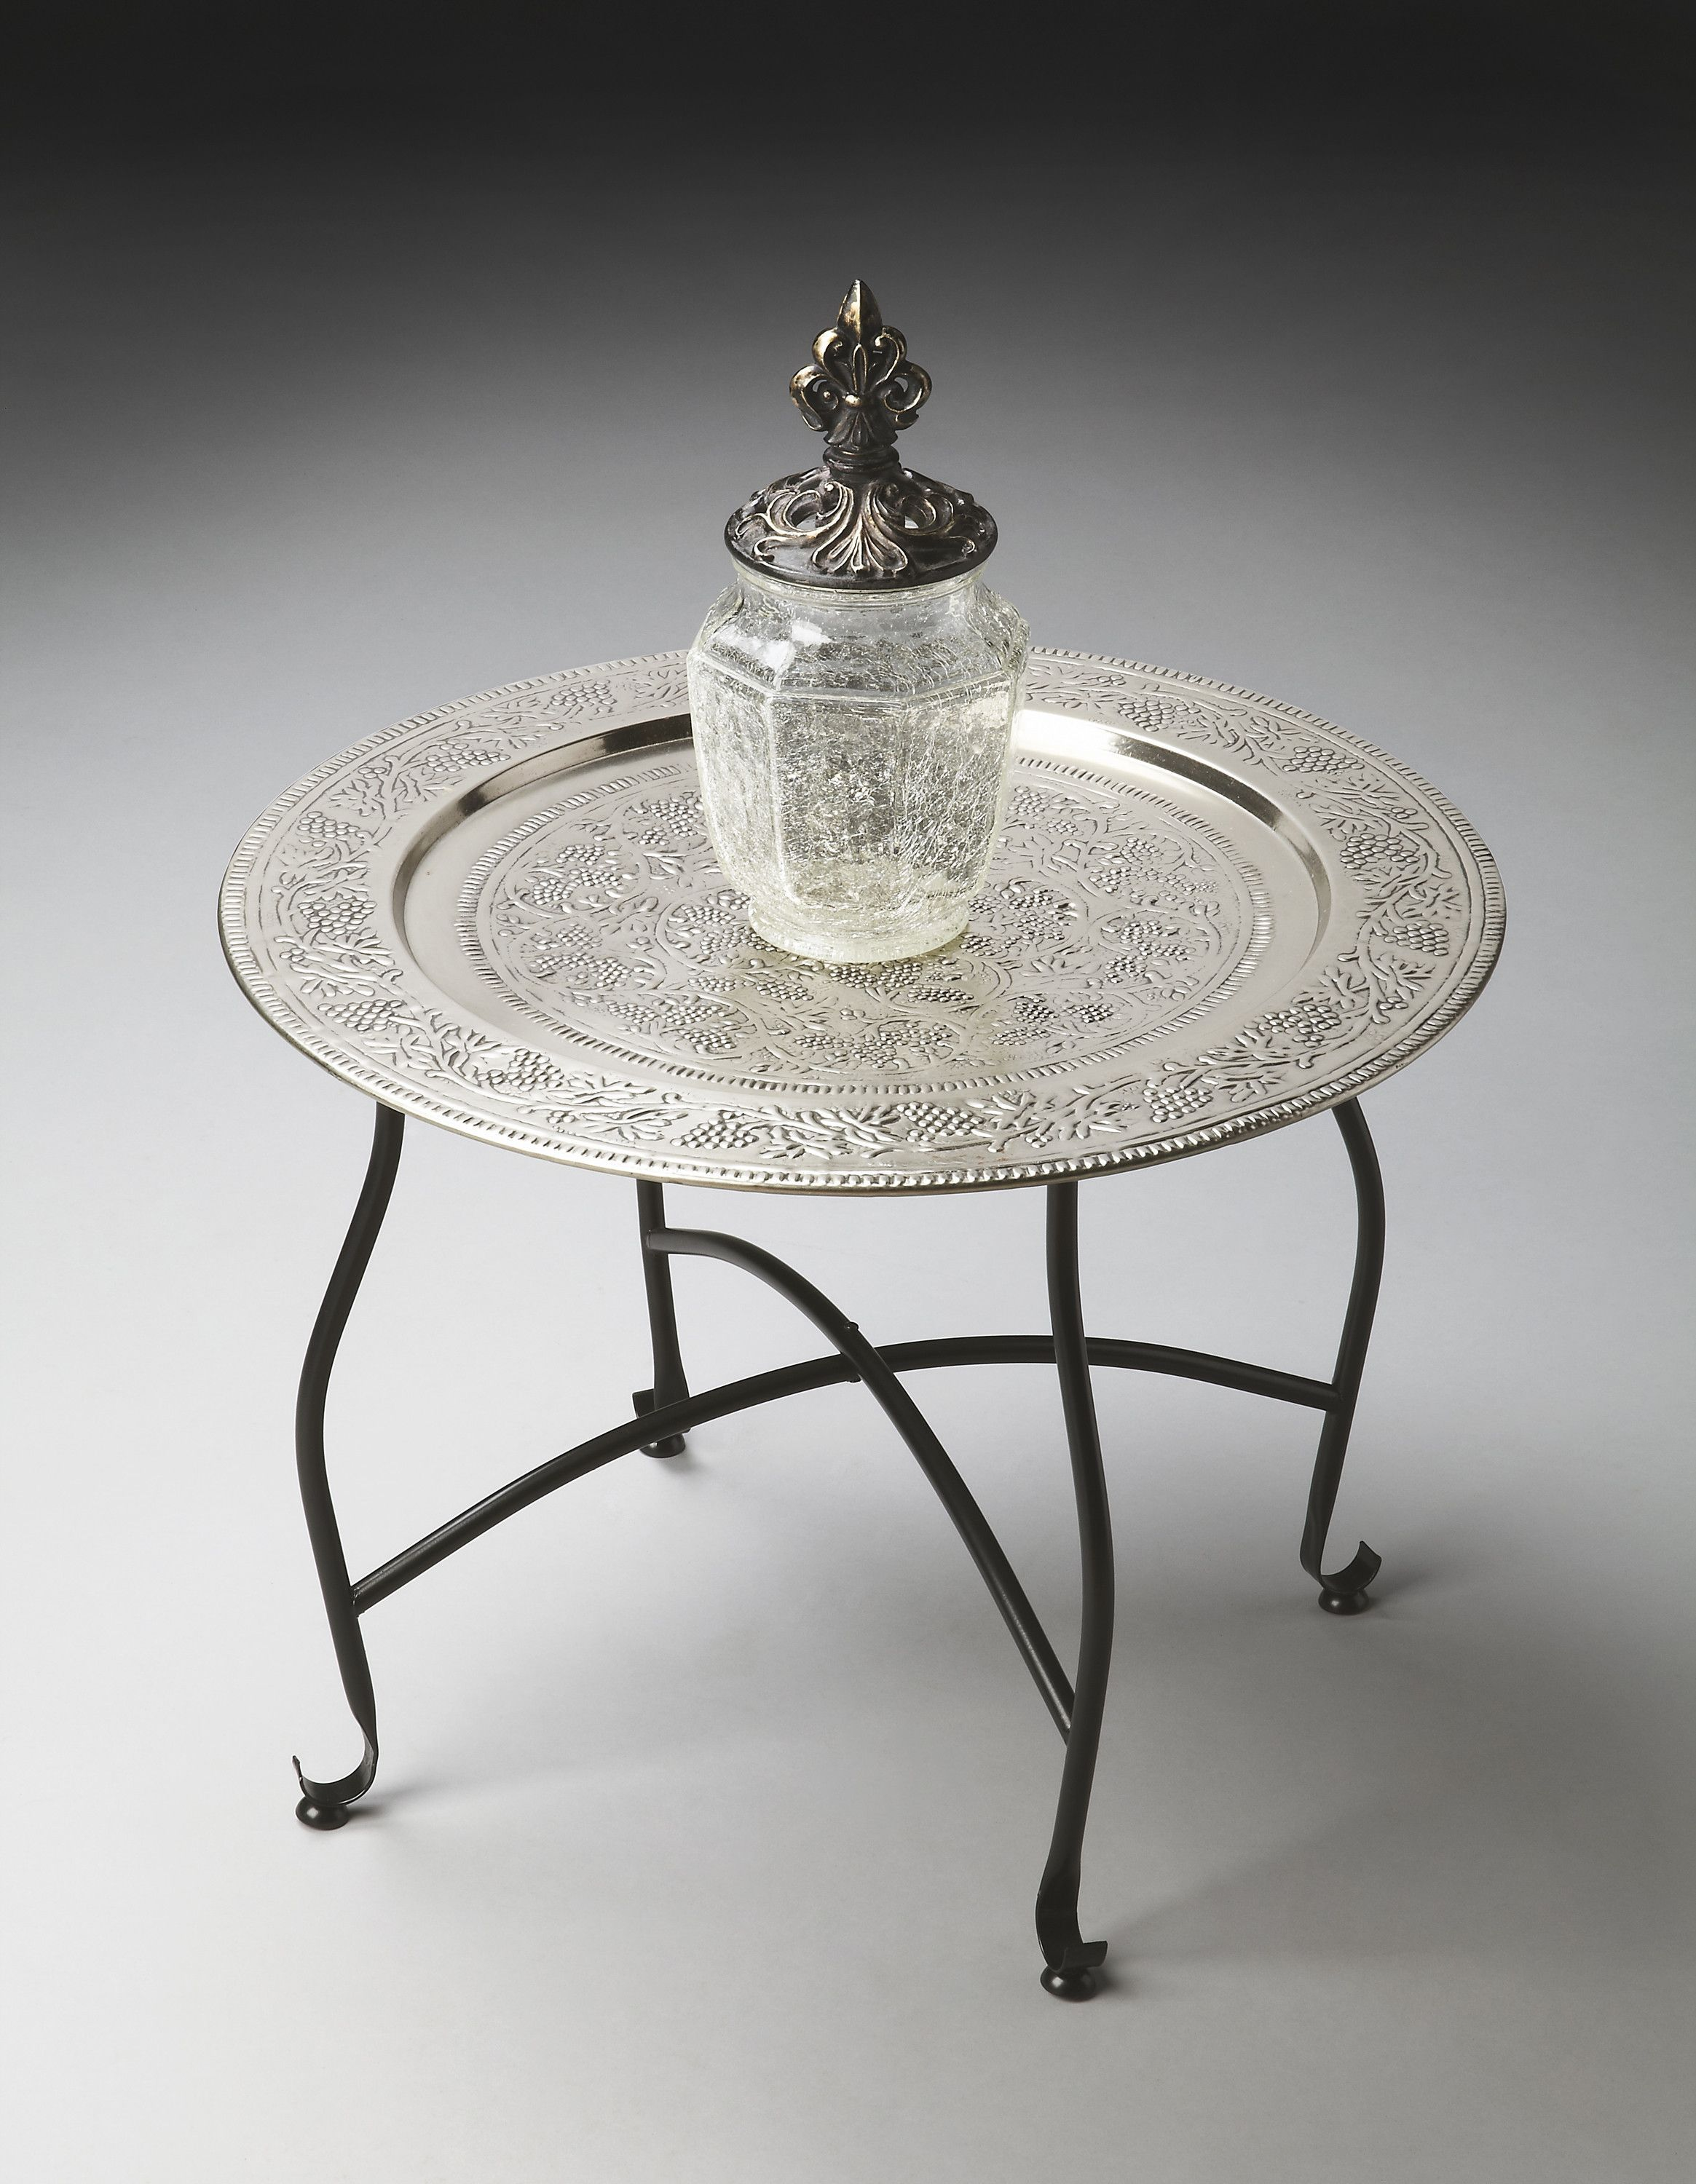 Moroccan Tray Coffee Table Coffee Table Moroccan Table Moroccan Decor Living Room [ 1200 x 1200 Pixel ]